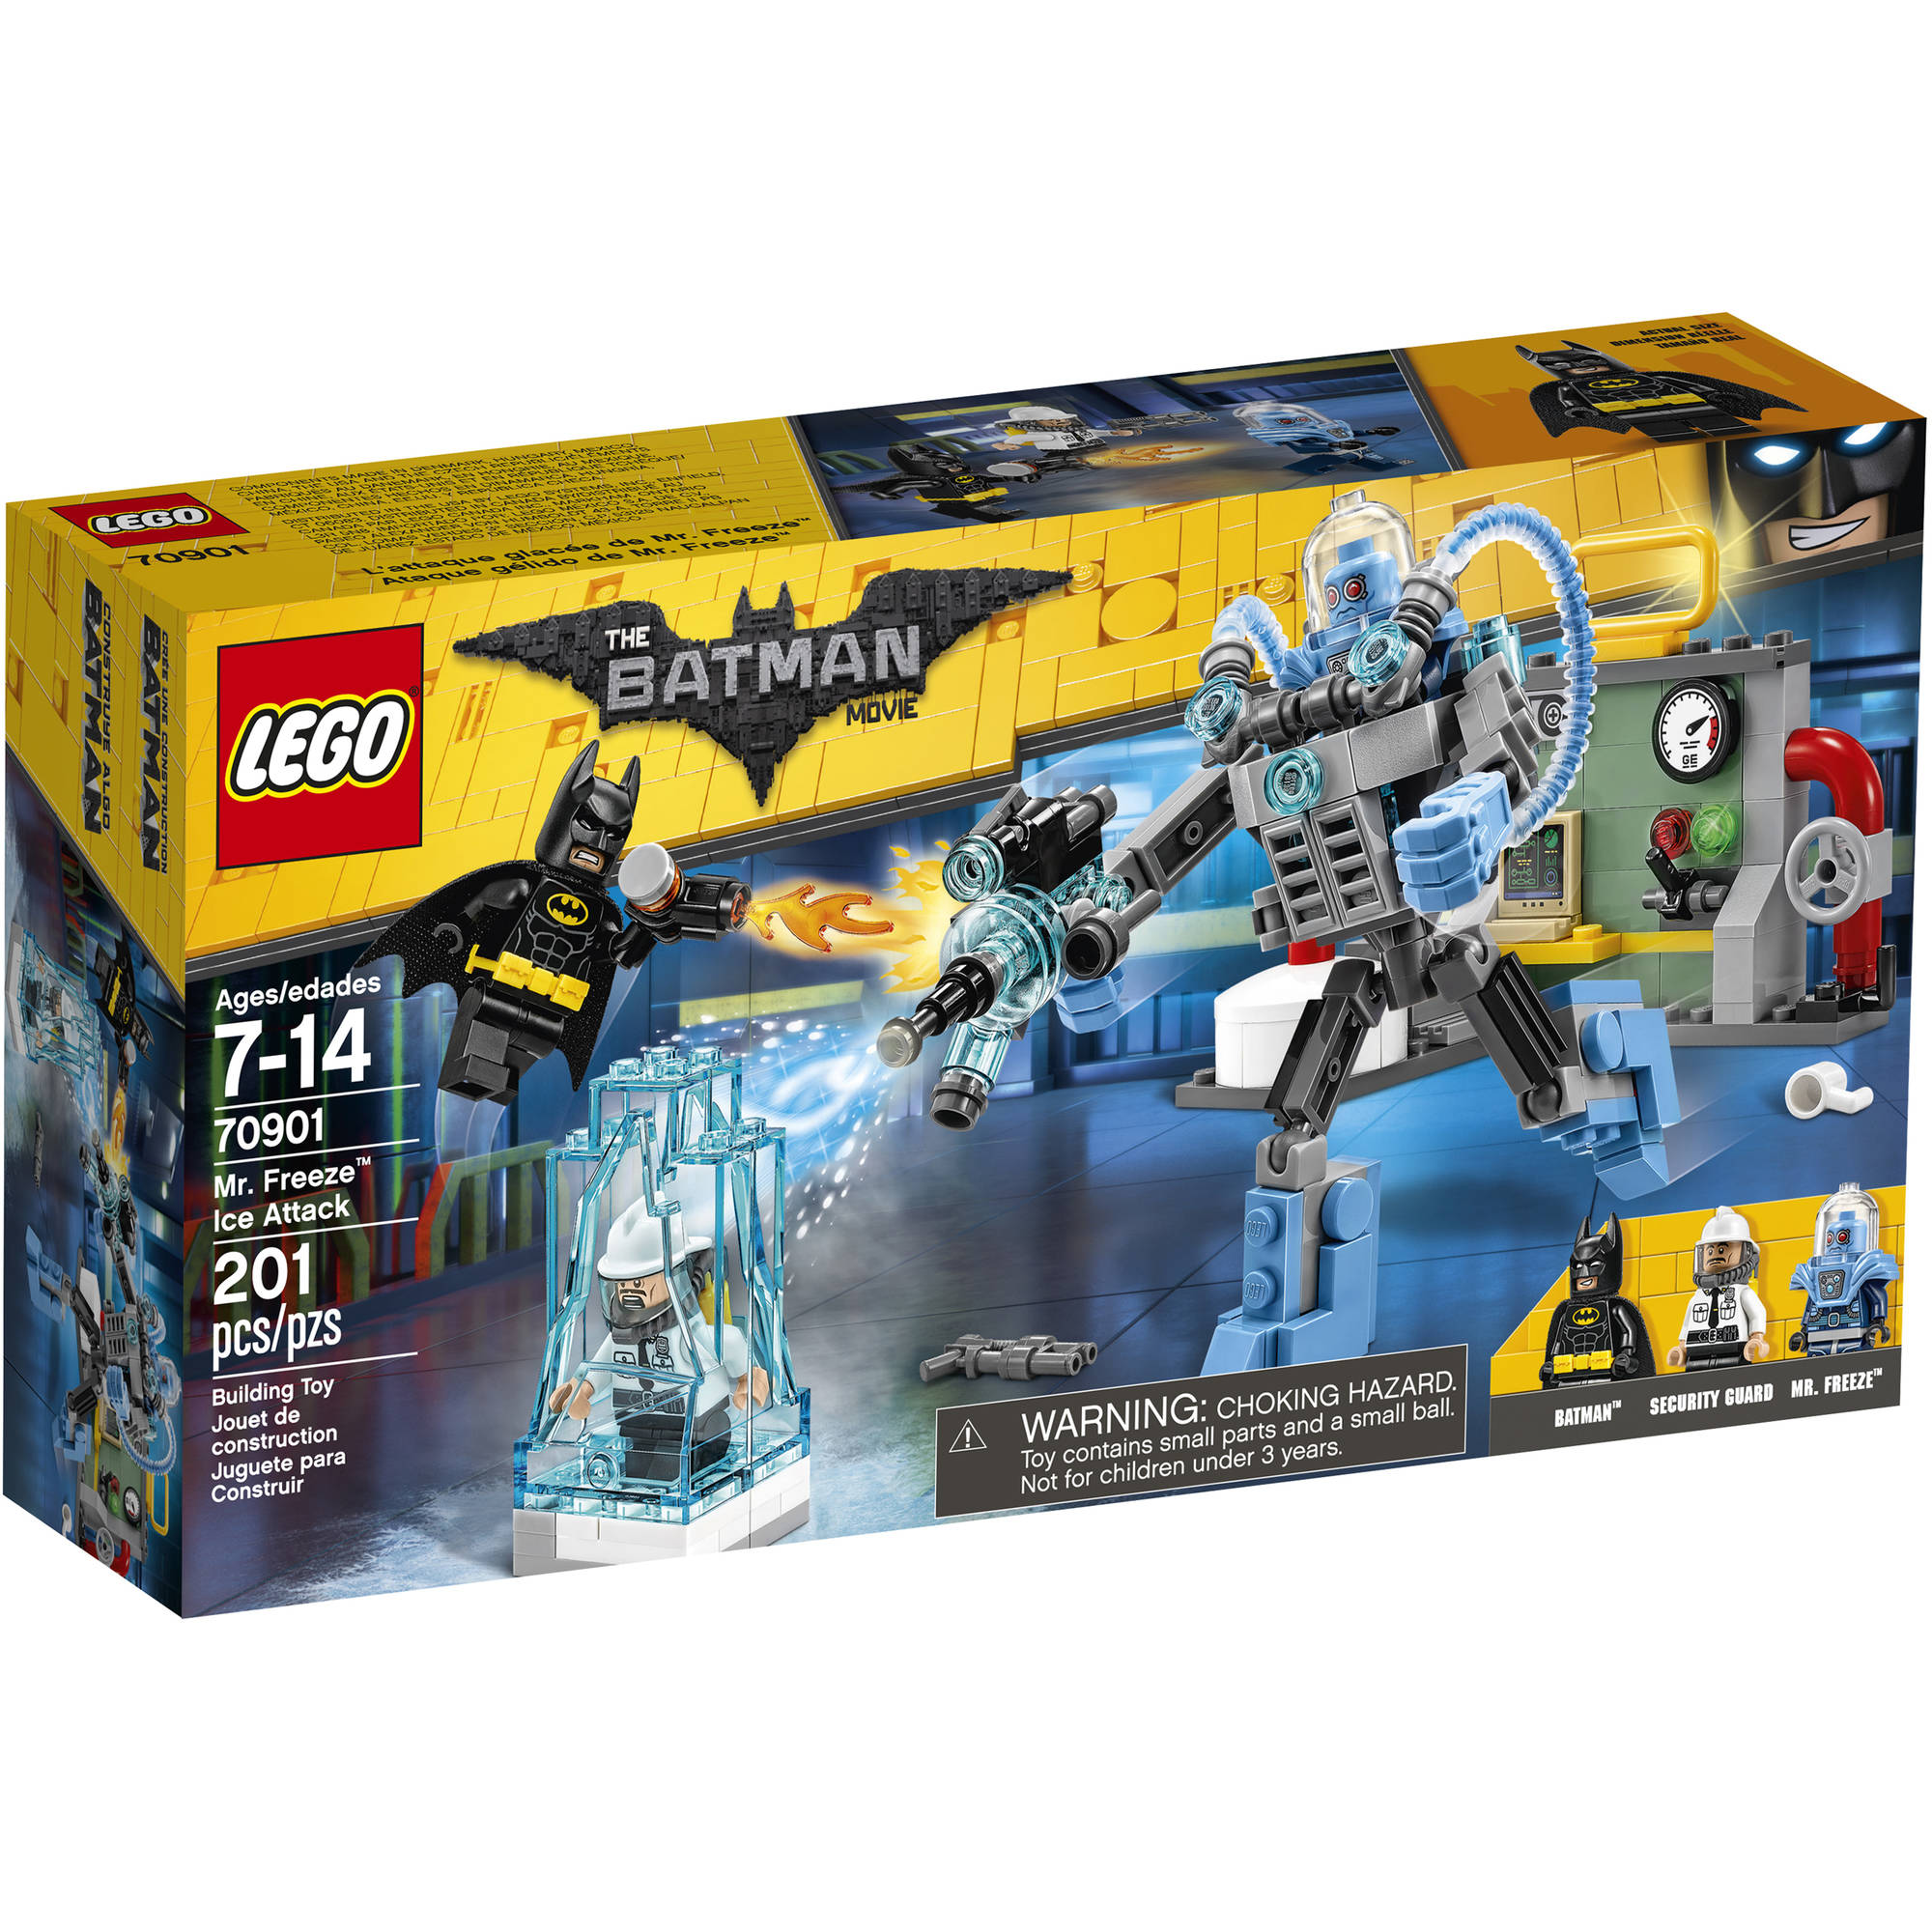 "LEGO Batman Movie Mr. Freeze"" Ice Attack"